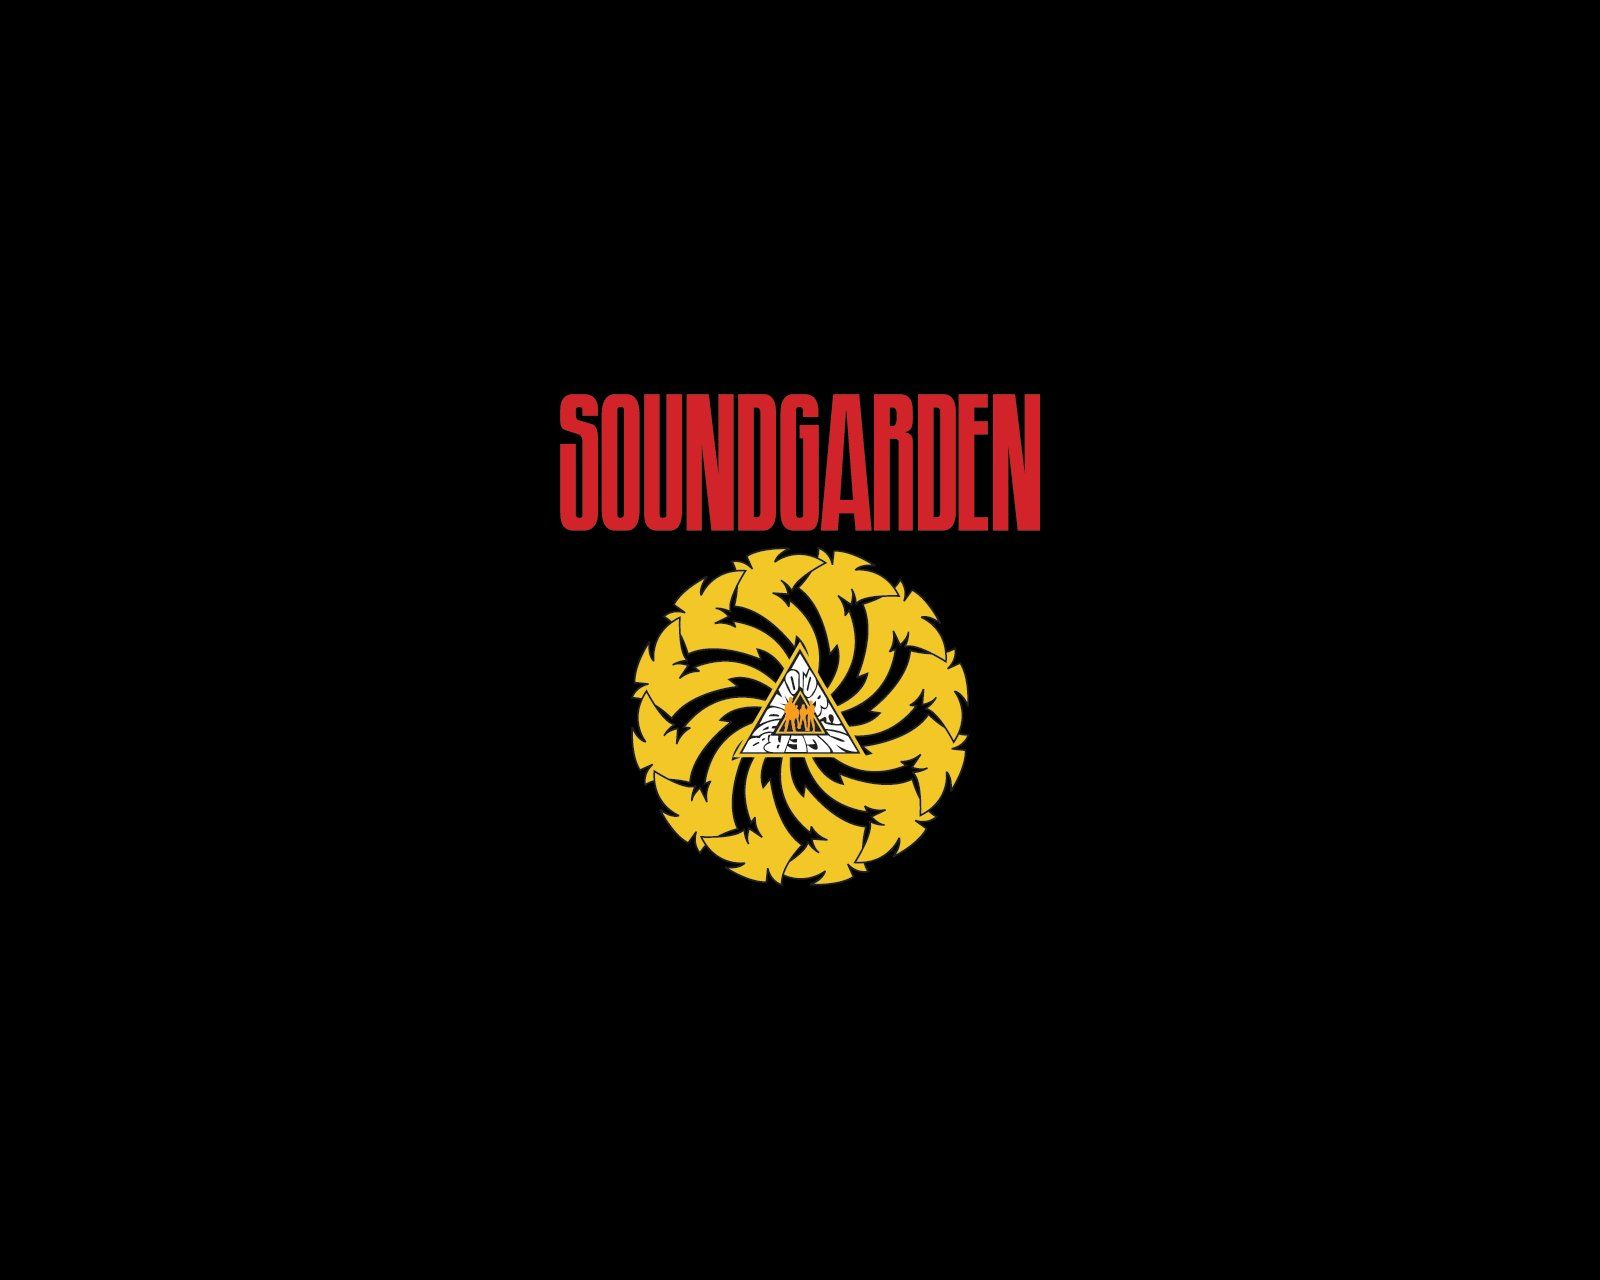 1600x1280 Soundgarden Wallpaper and Background Image | 1600x1280 | ID:294900 ...